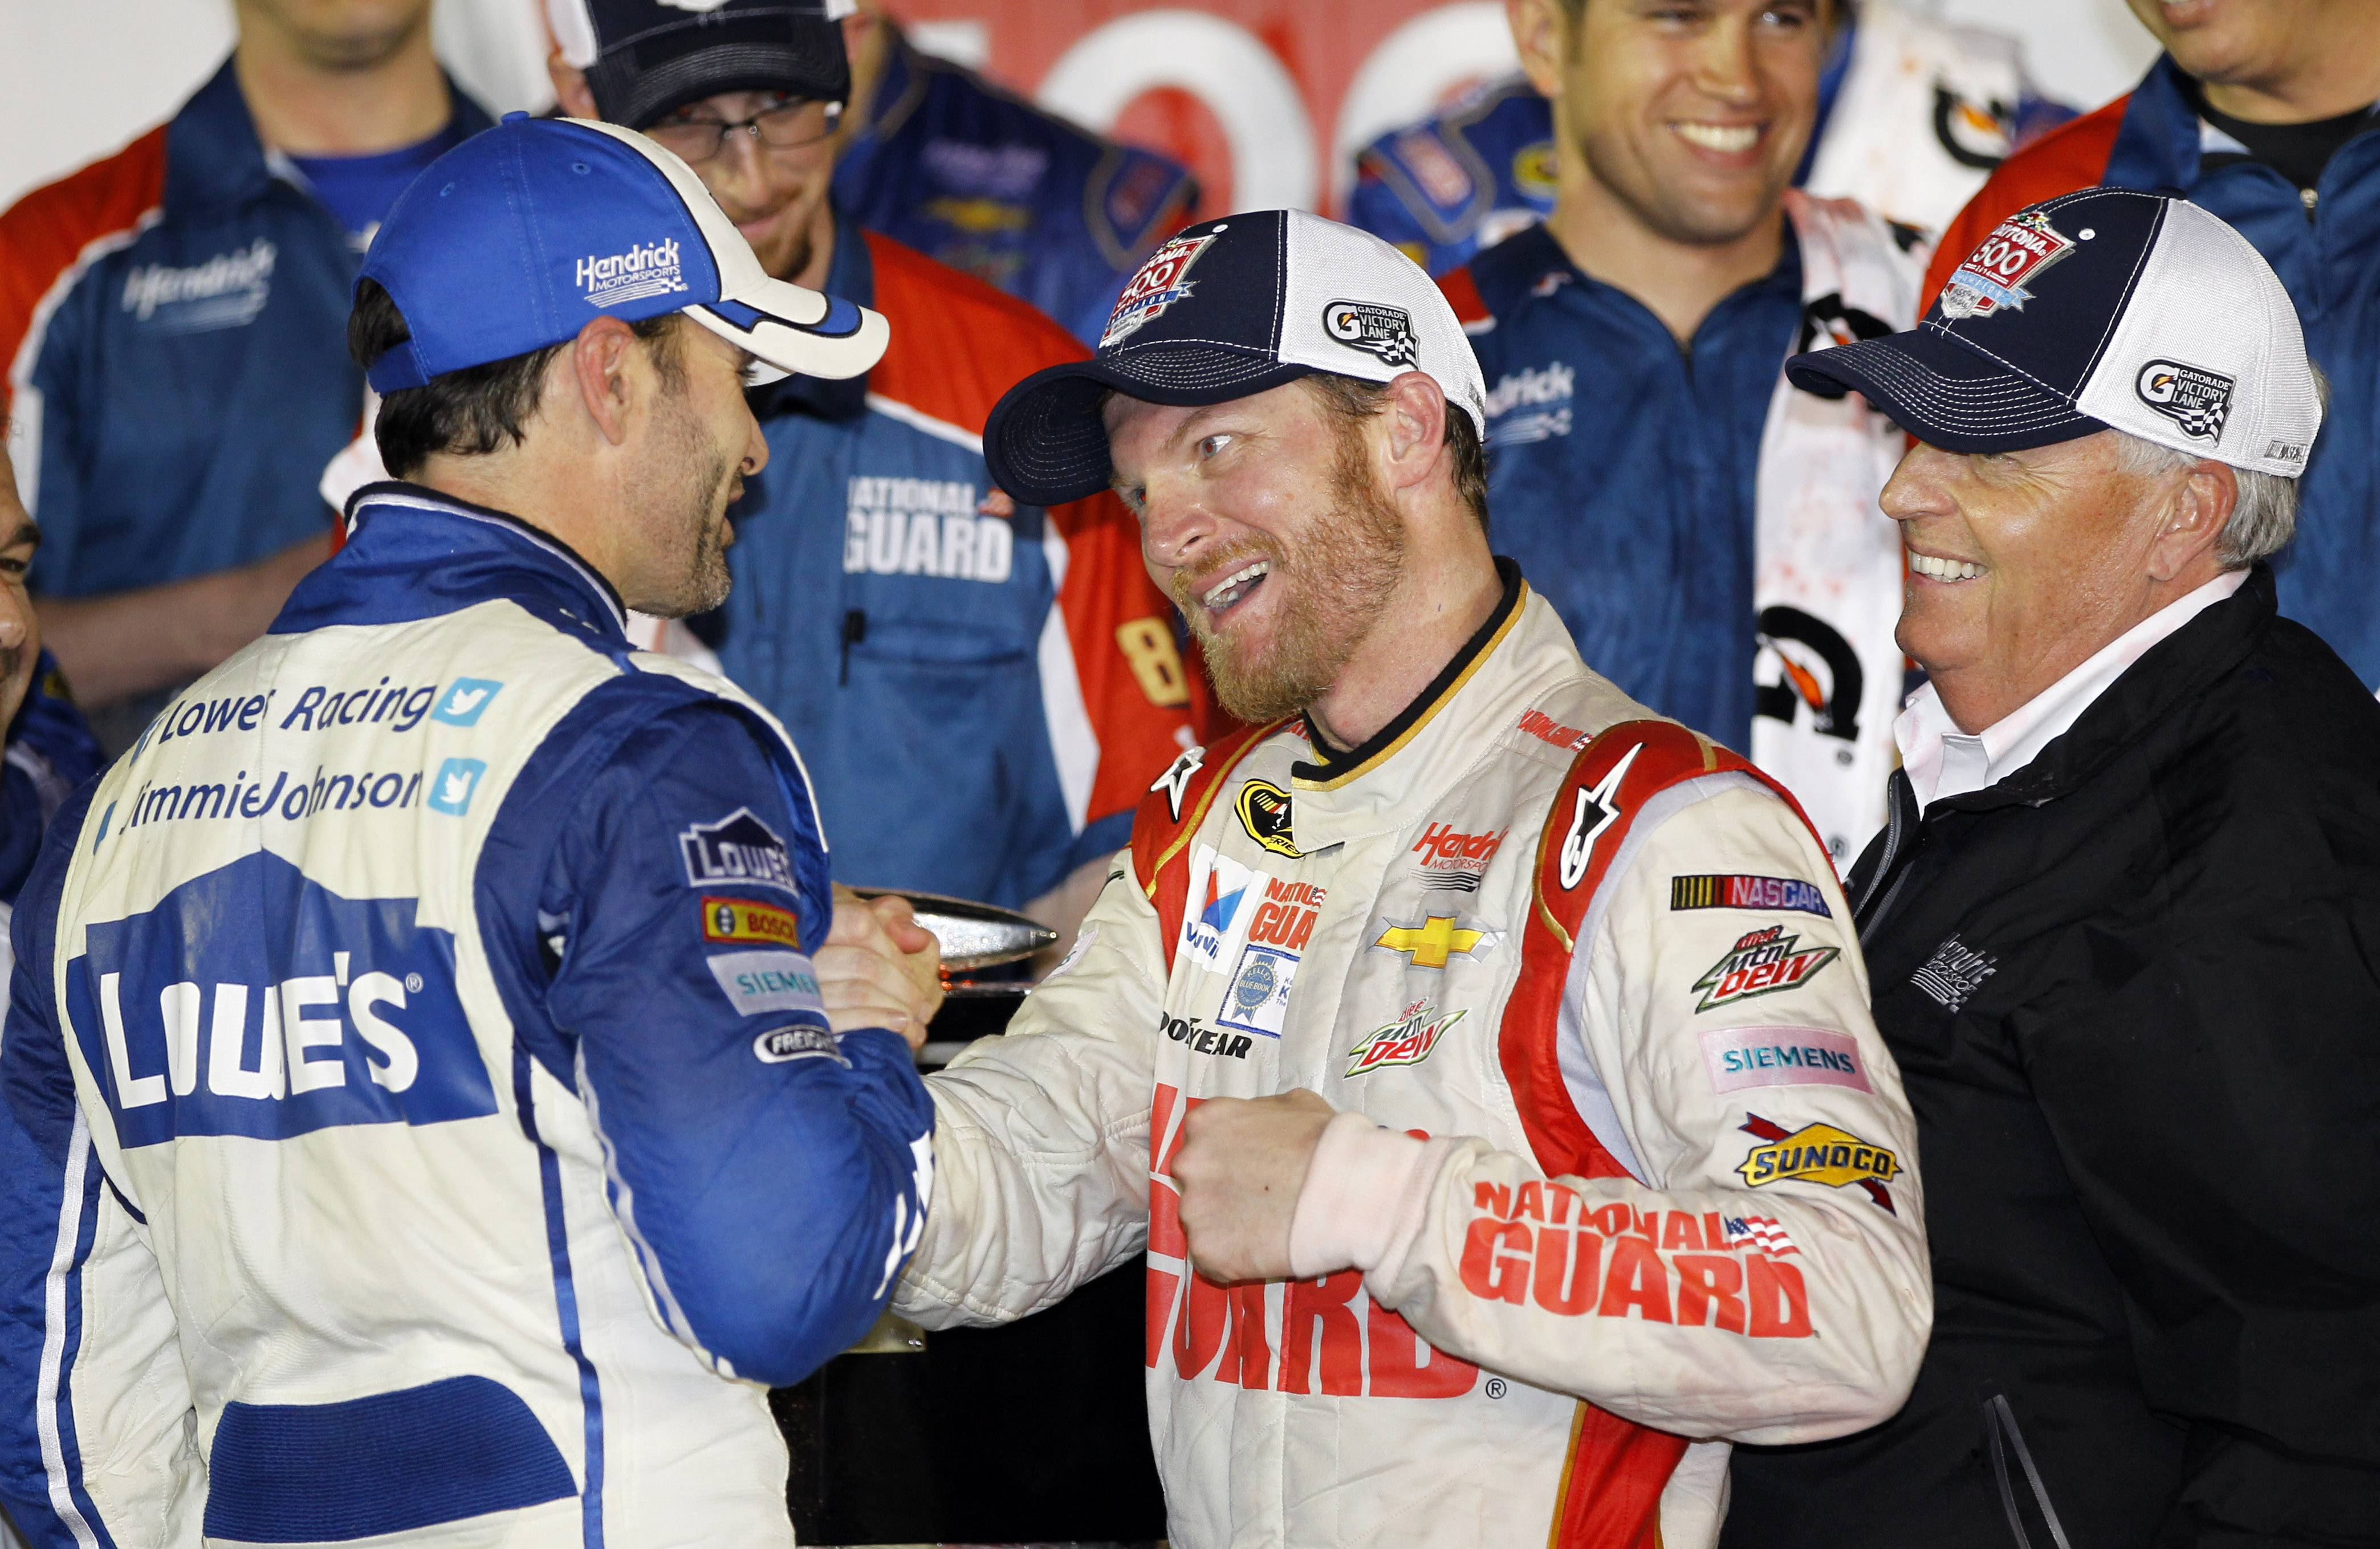 Dale Earnhardt Jr., center, celebrates in Victory Lane with teammate Jimmie Johnson, left, and team owner Rick Hendrick, right, after winning the NASCAR Daytona 500 Sprint Cup series auto race Sunday at Daytona International Speedway in Daytona Beach, Fla.